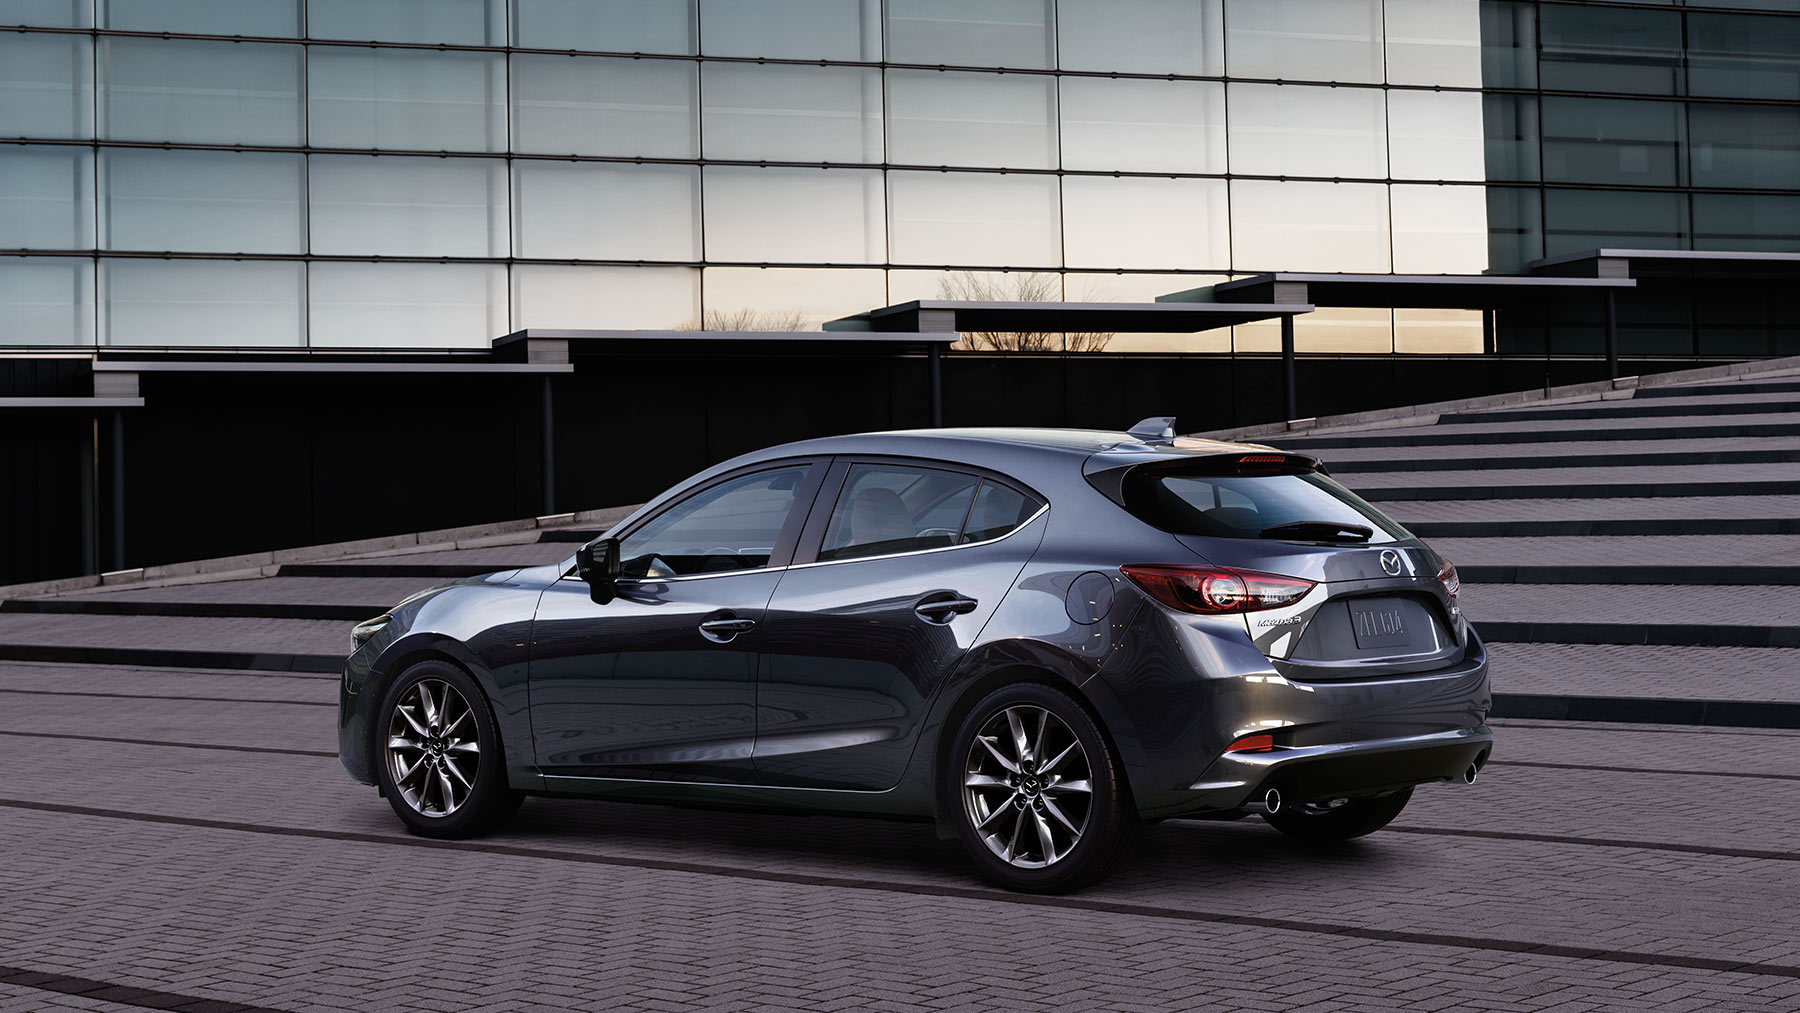 What Styles Does The Mazda3 Come In